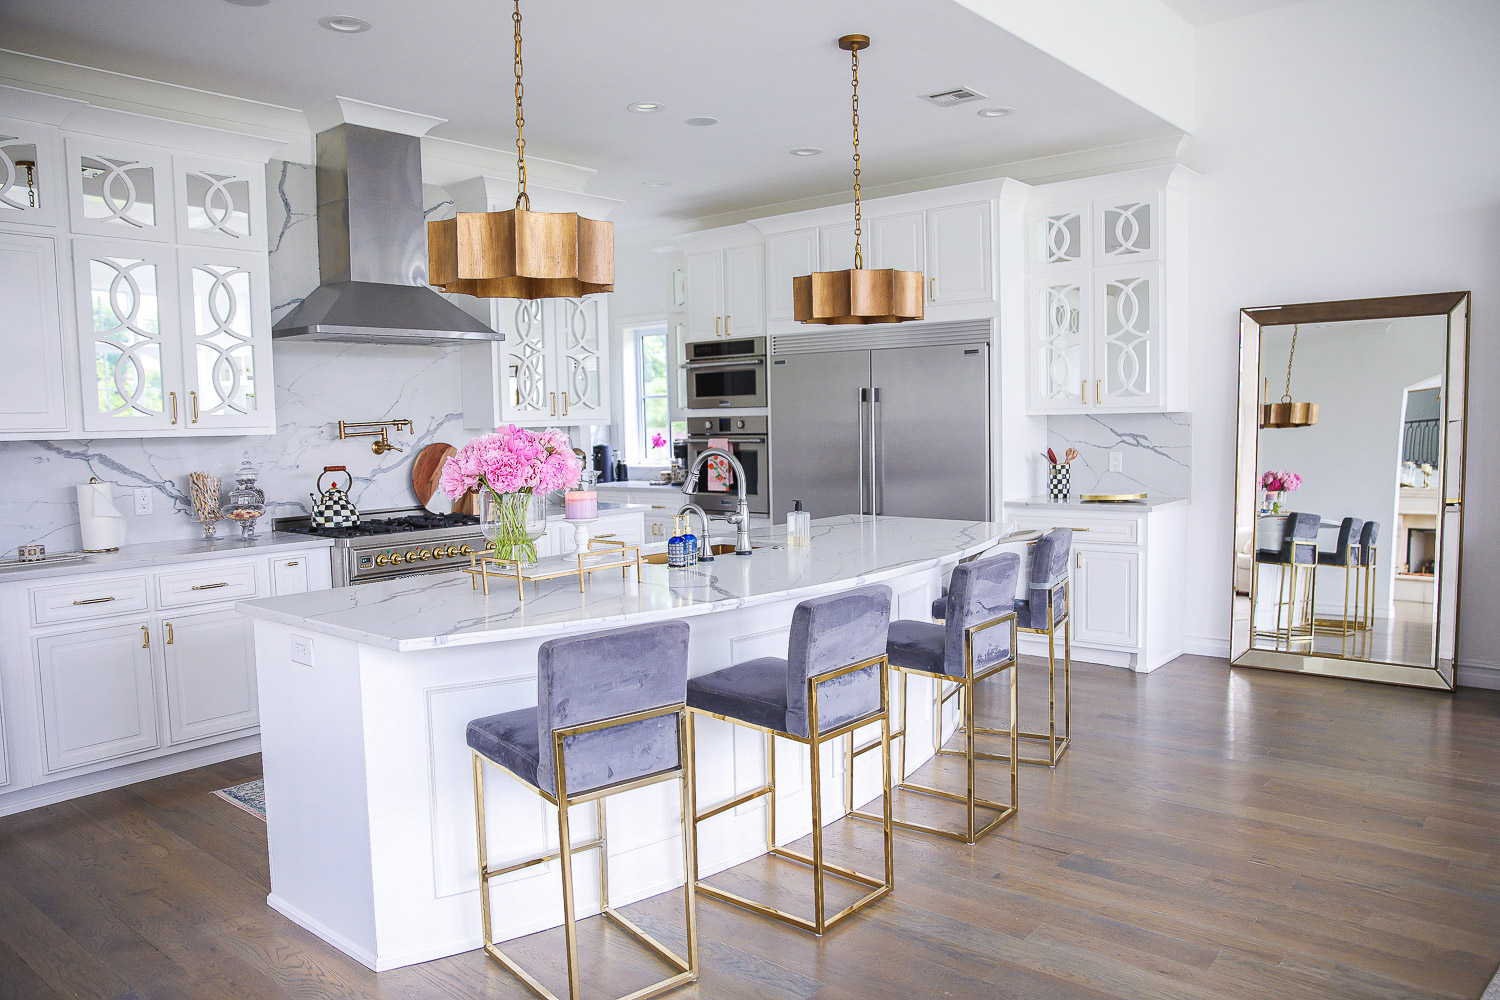 Spring Kitchen by popular US life and style blog: image of a kitchen with white cabinets, wood flooring, wooden light pendants, marble counter tops, gold and grey velvet bar stools, and light pink and blue runner rug.